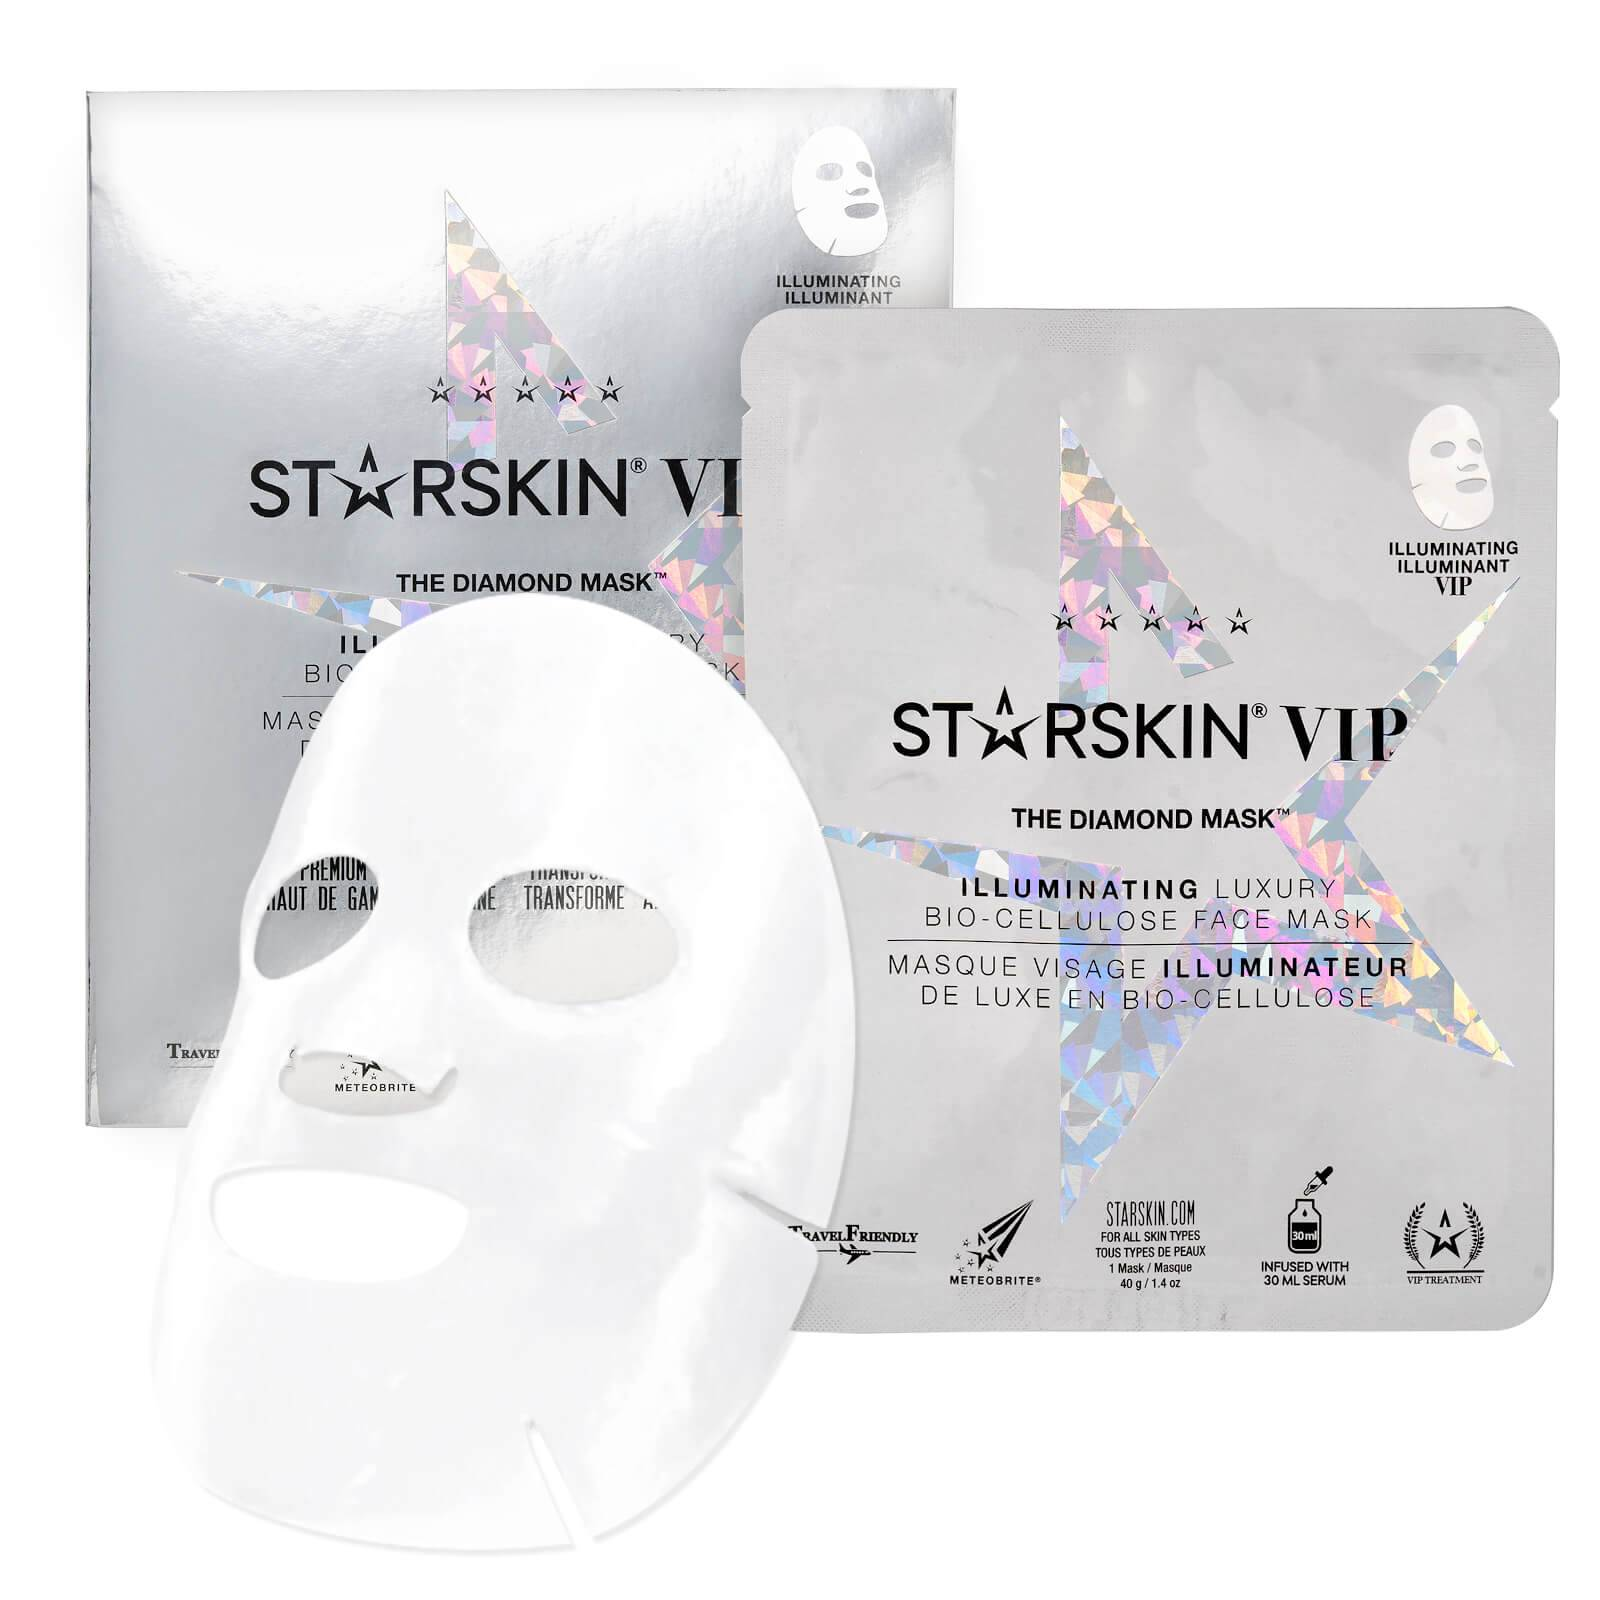 STARSKIN Masque Visage VIP Seconde Peau Illuminateur Noix de Coco Bio-Cellulose The Diamond Mask™ STARSKIN